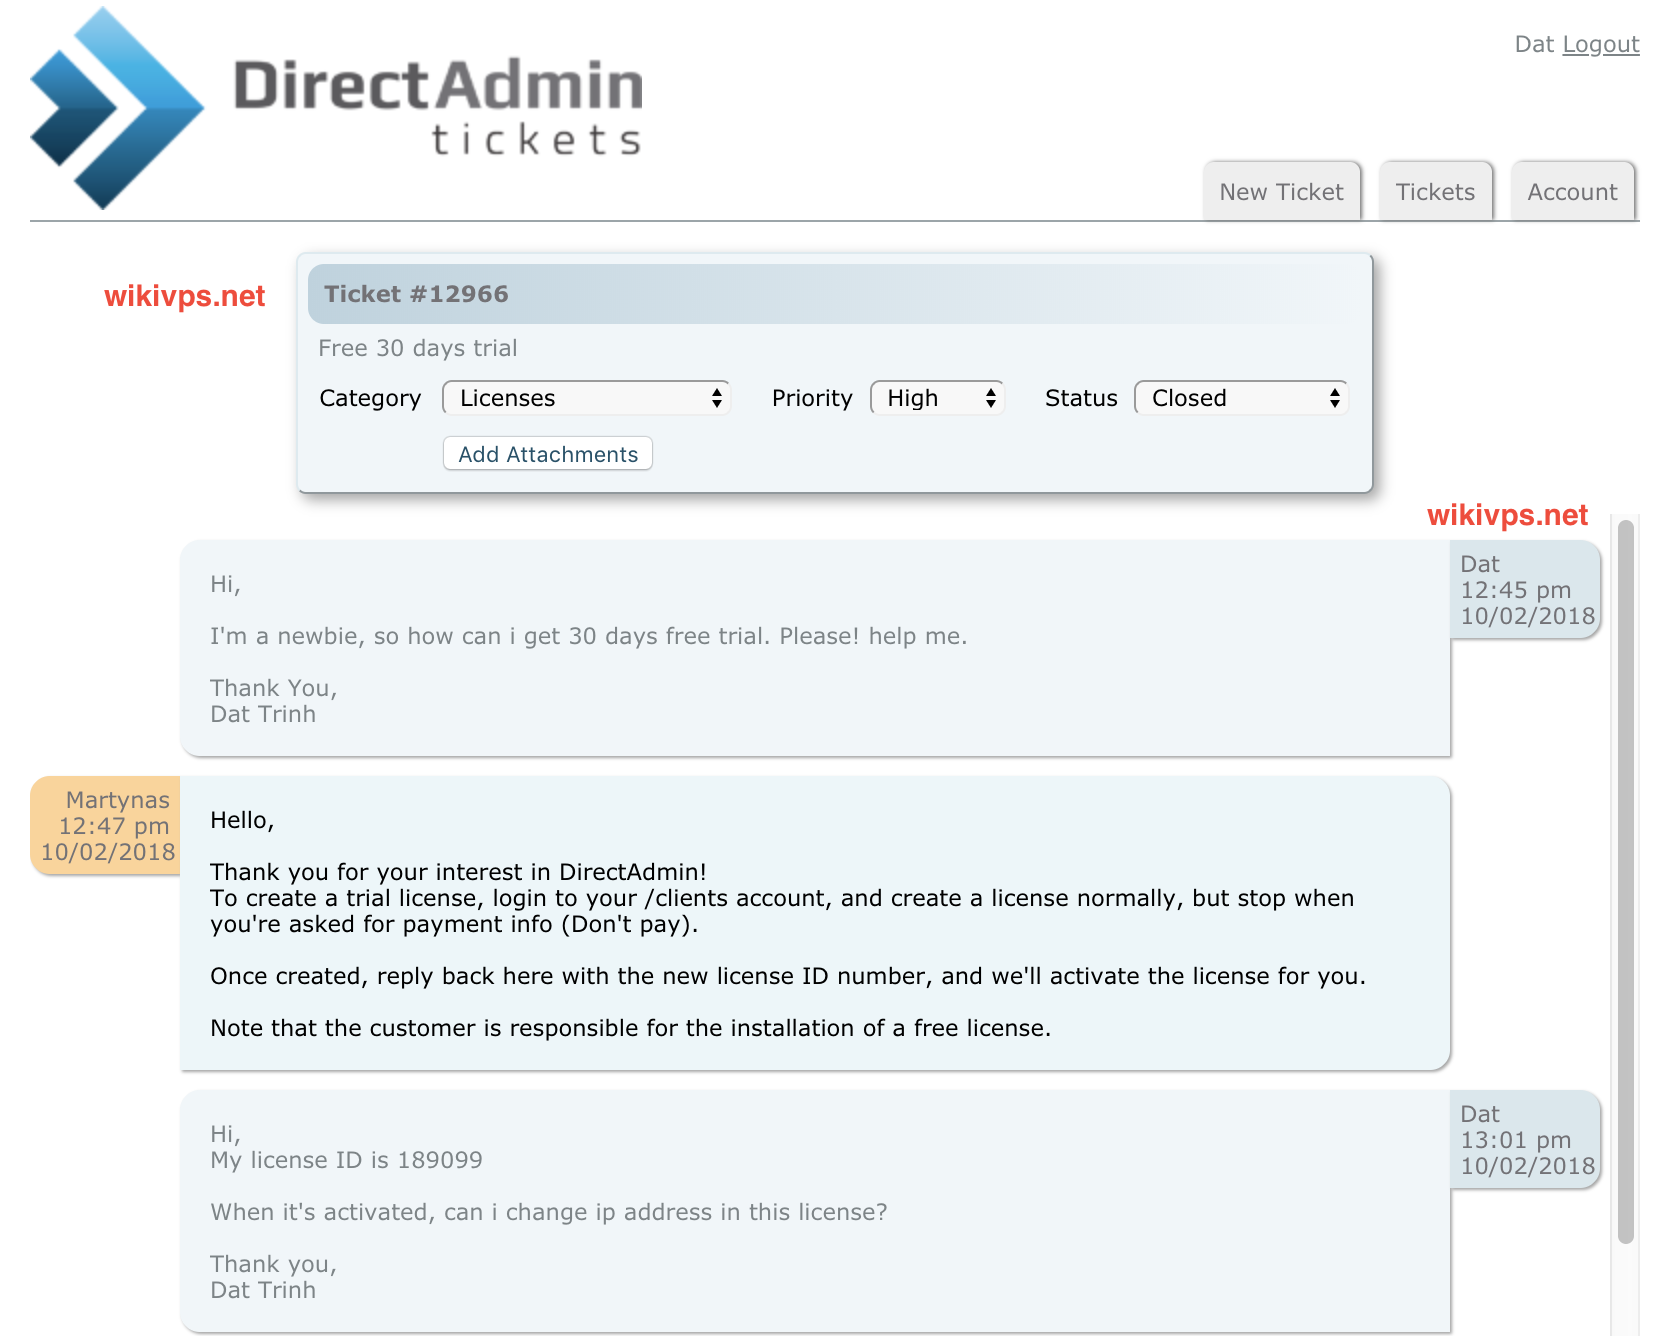 wikivps-directadmin supported 1